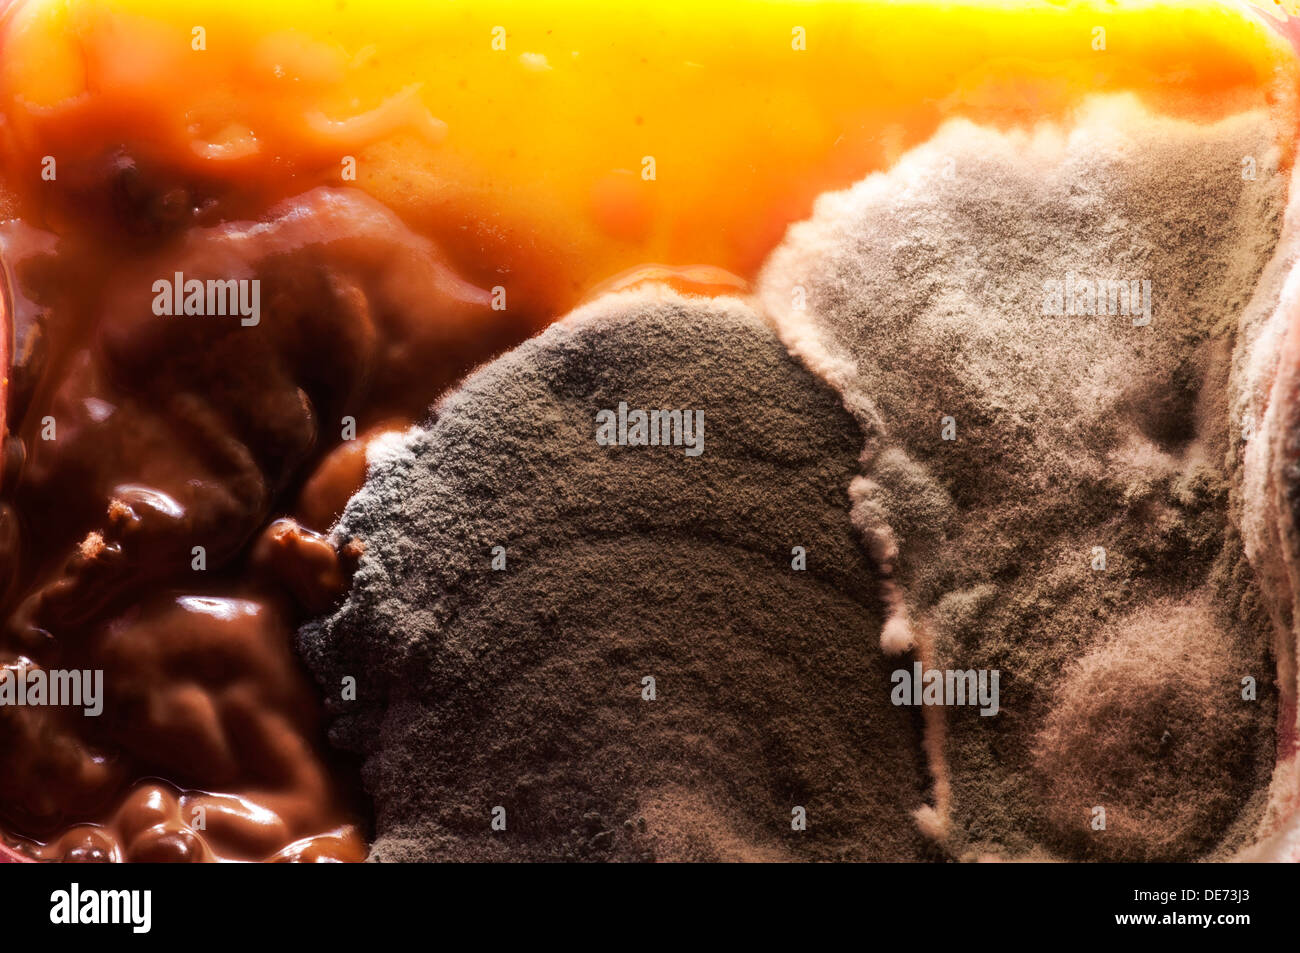 Fungus growing in the old food - Stock Image